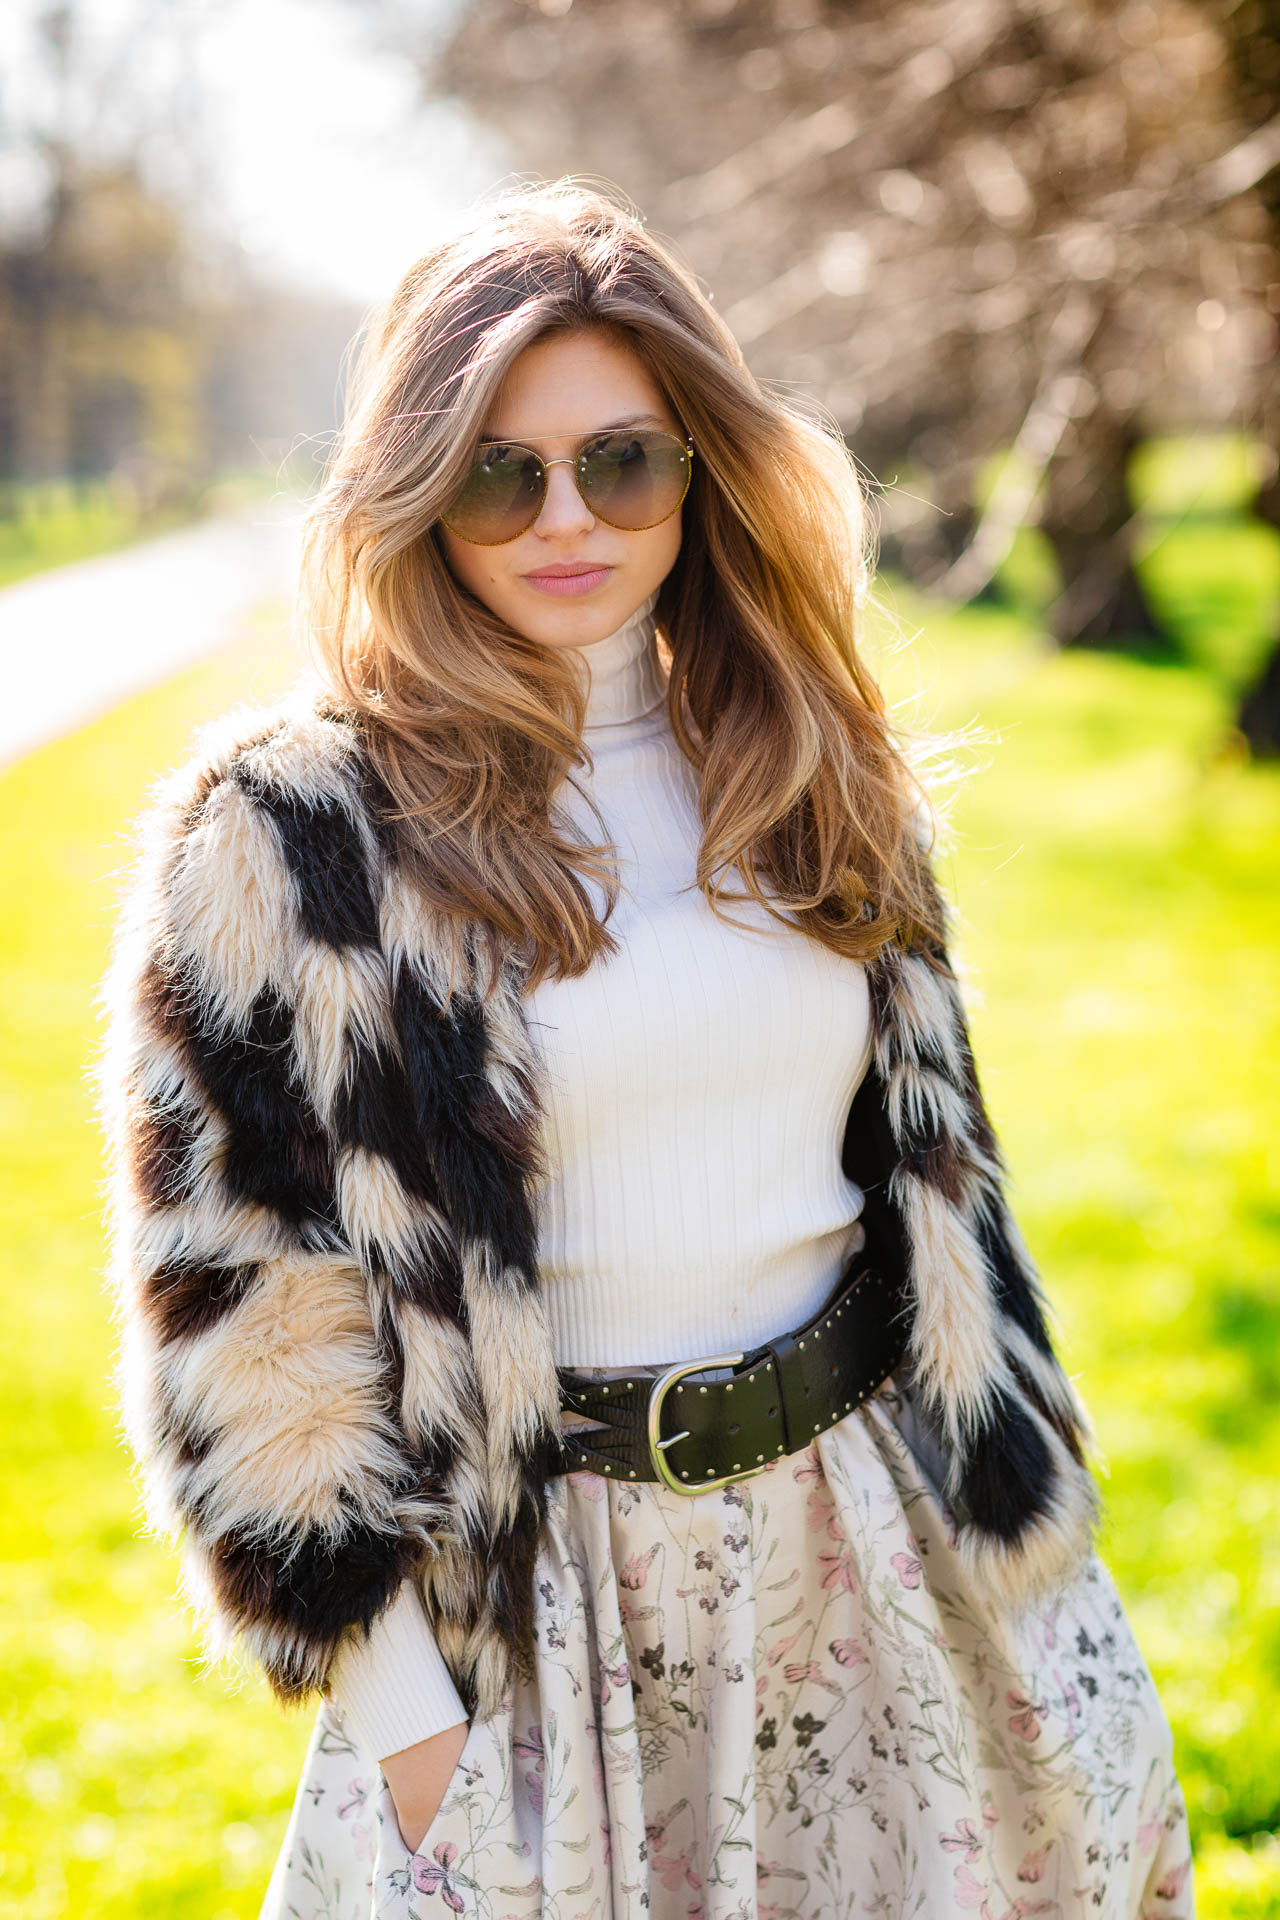 portrait of woman in holland park with fur coat